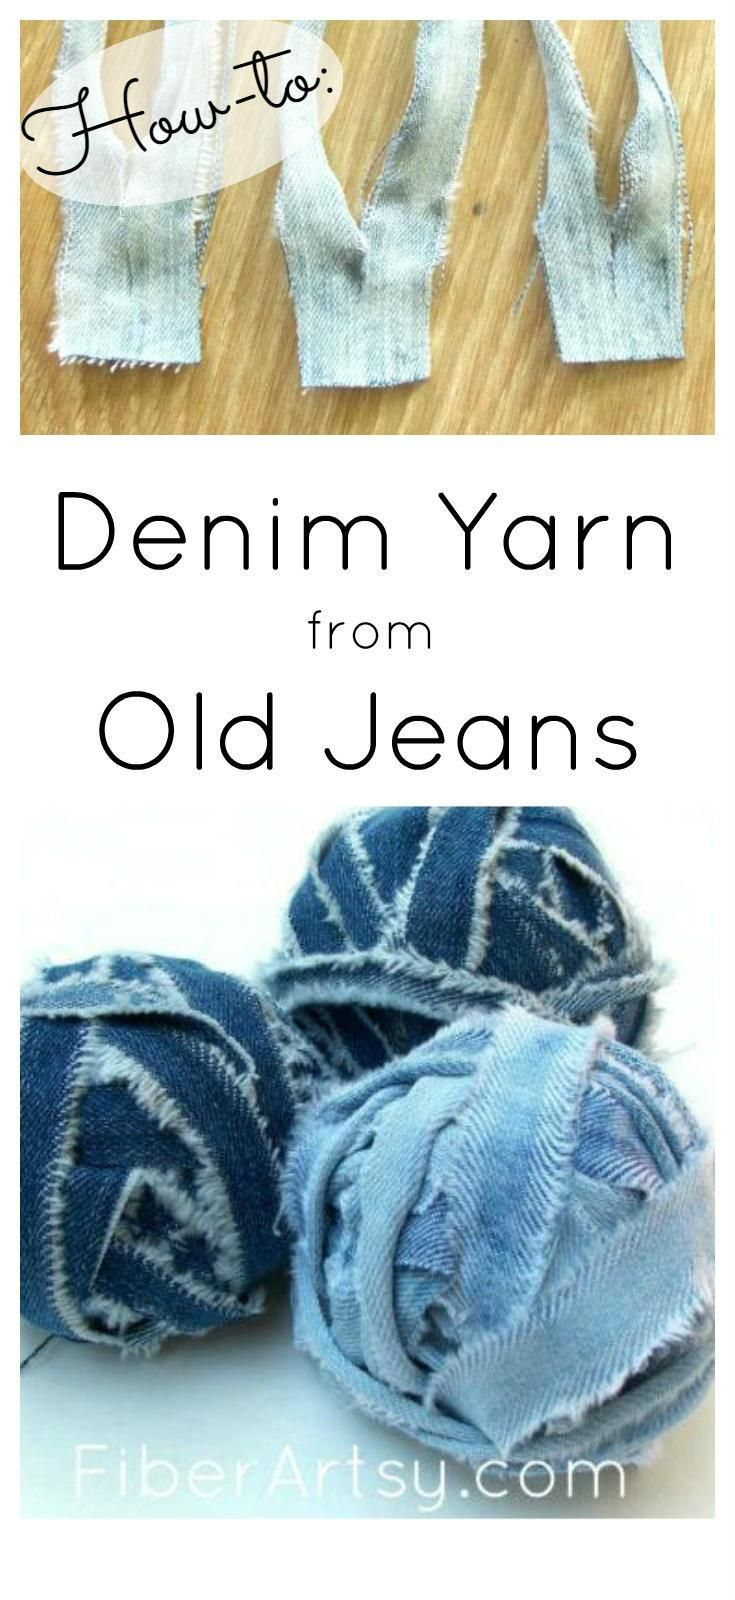 How to Make Denim Yarn from Old Jeans   Great for lots of knit and crochet patterns such as rugs or purses. Free tutorial from FiberArtsy.com